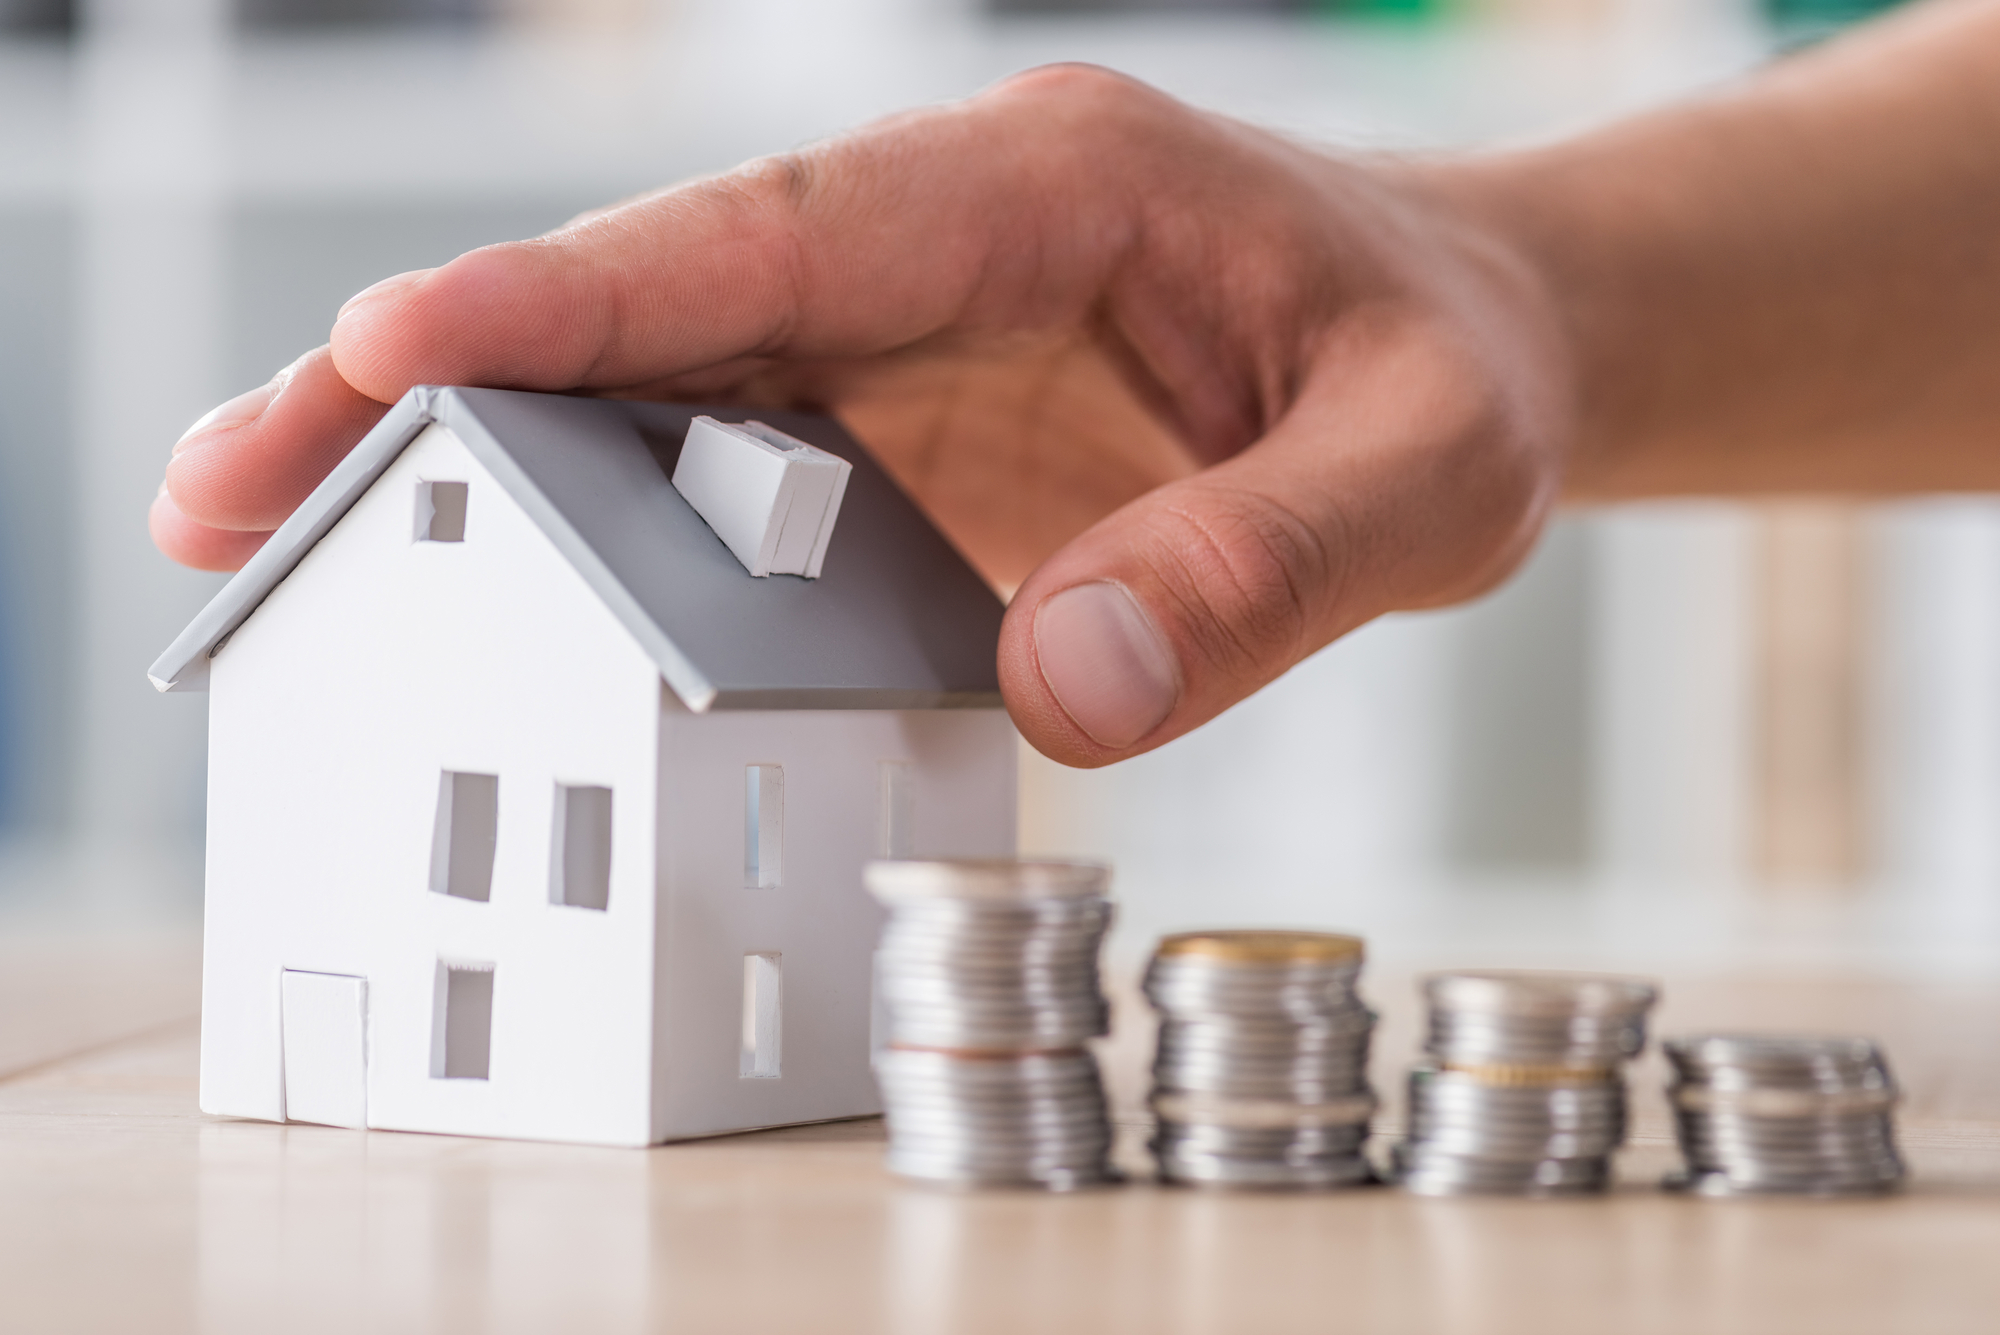 Cropped view of businessman touching roof of house model near stacked coins